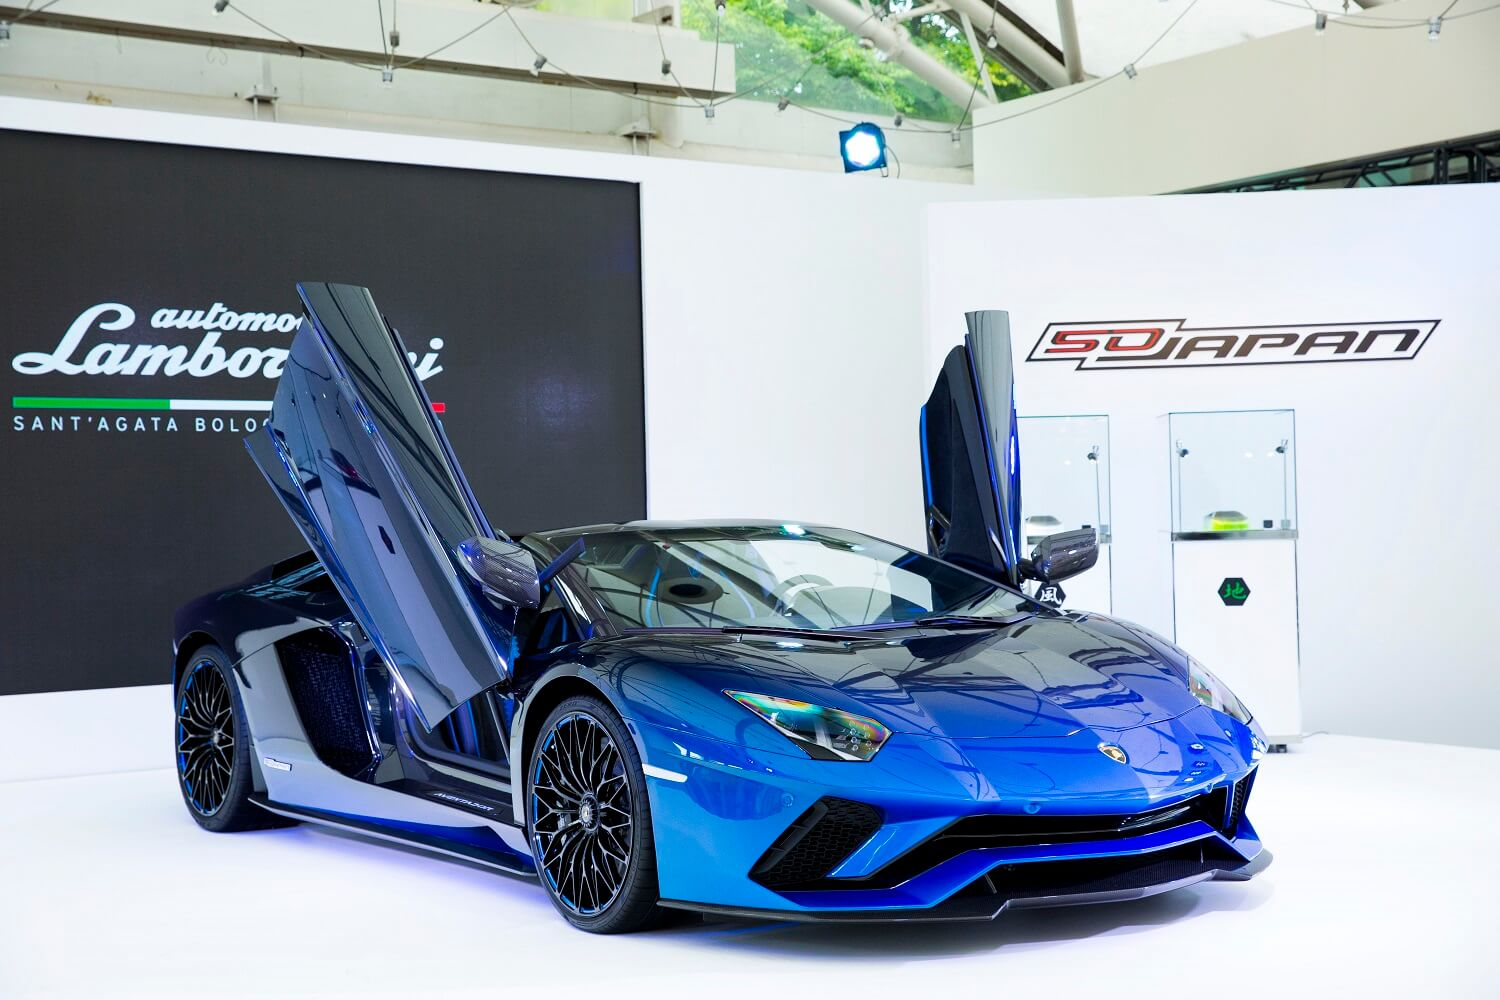 Bicycle_03 - Aventador-S-Roadtser-50th-Anniversary-Japan